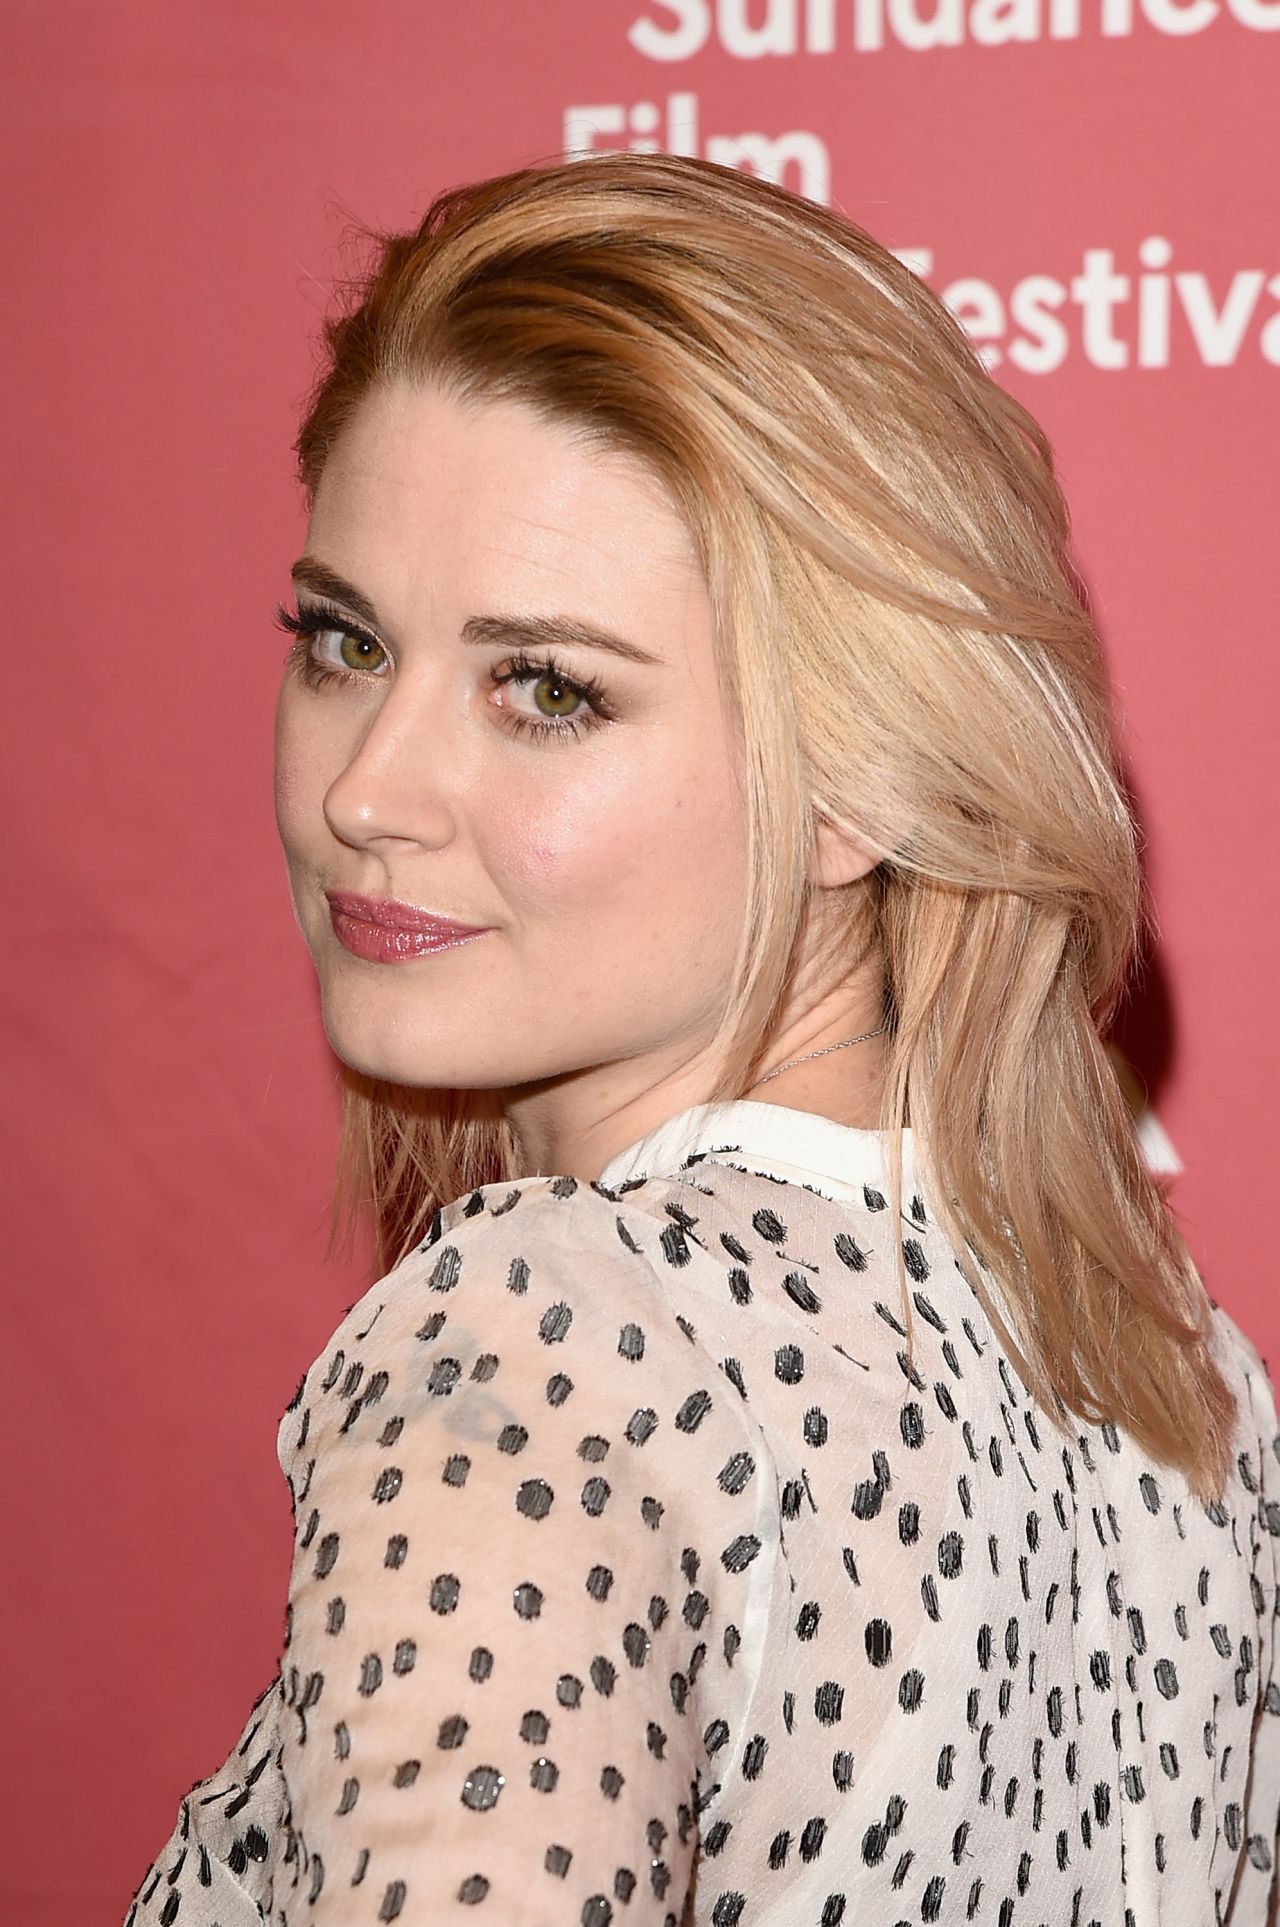 alexandra breckenridge husbandalexandra breckenridge freaks and geeks, alexandra breckenridge wallpaper, alexandra breckenridge hair color, alexandra breckenridge evan peters, alexandra breckenridge mbti, alexandra breckenridge tumblr gif, alexandra breckenridge cinemorgue, alexandra breckenridge reddit, alexandra breckenridge zimbio, alexandra breckenridge husband, alexandra breckenridge insta, alexandra breckenridge csi, alexandra breckenridge instagram, alexandra breckenridge walking dead, alexandra breckenridge moira o'hara, alexandra breckenridge healthy celeb, alexandra breckenridge fan mail